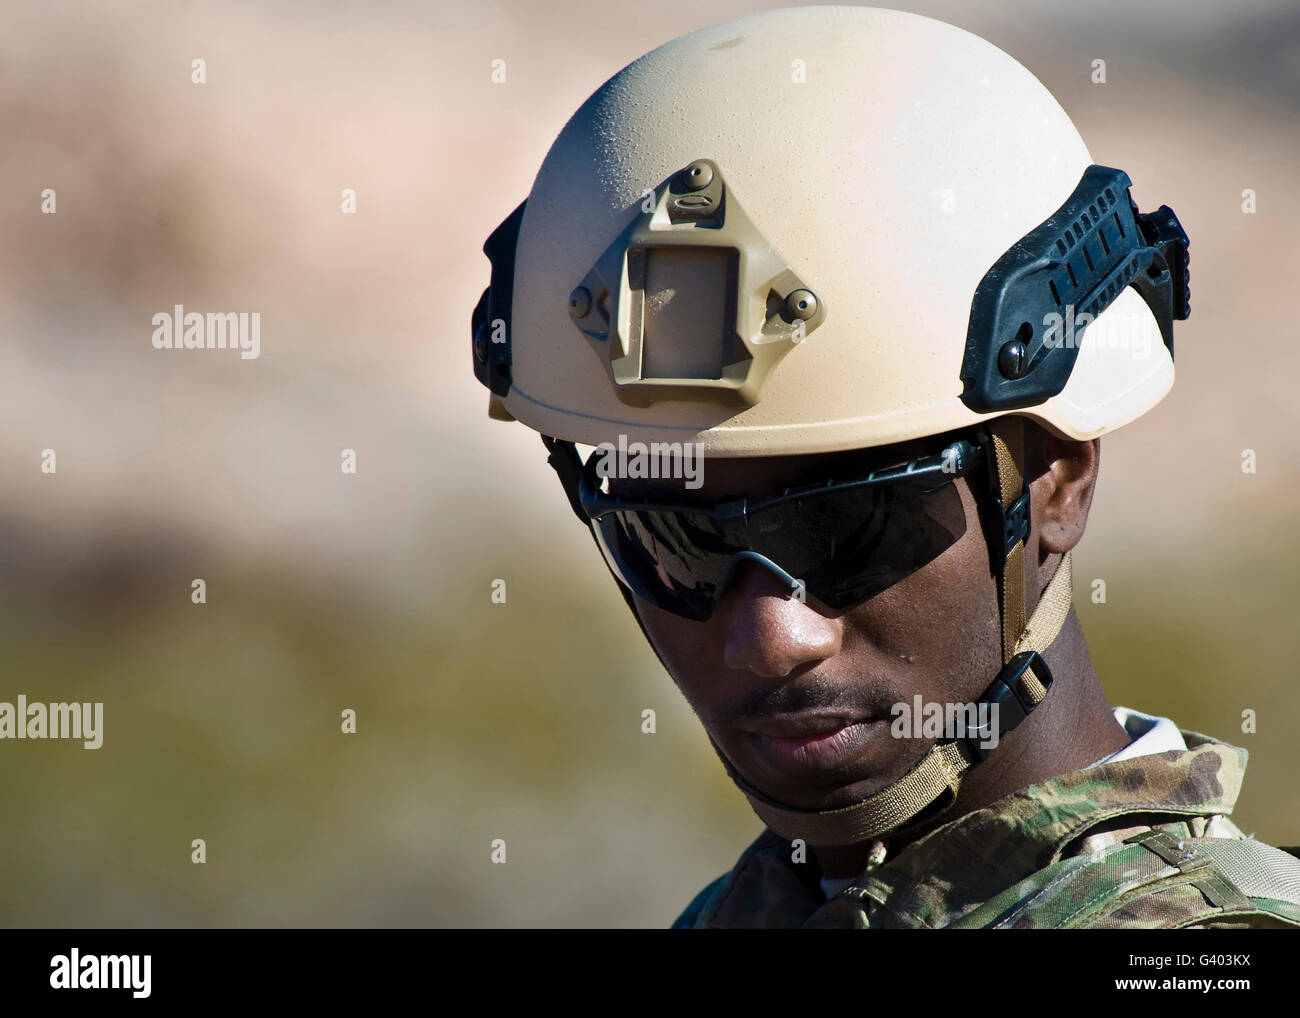 U.S. Air Force explosive ordnance disposal technician. - Stock Image